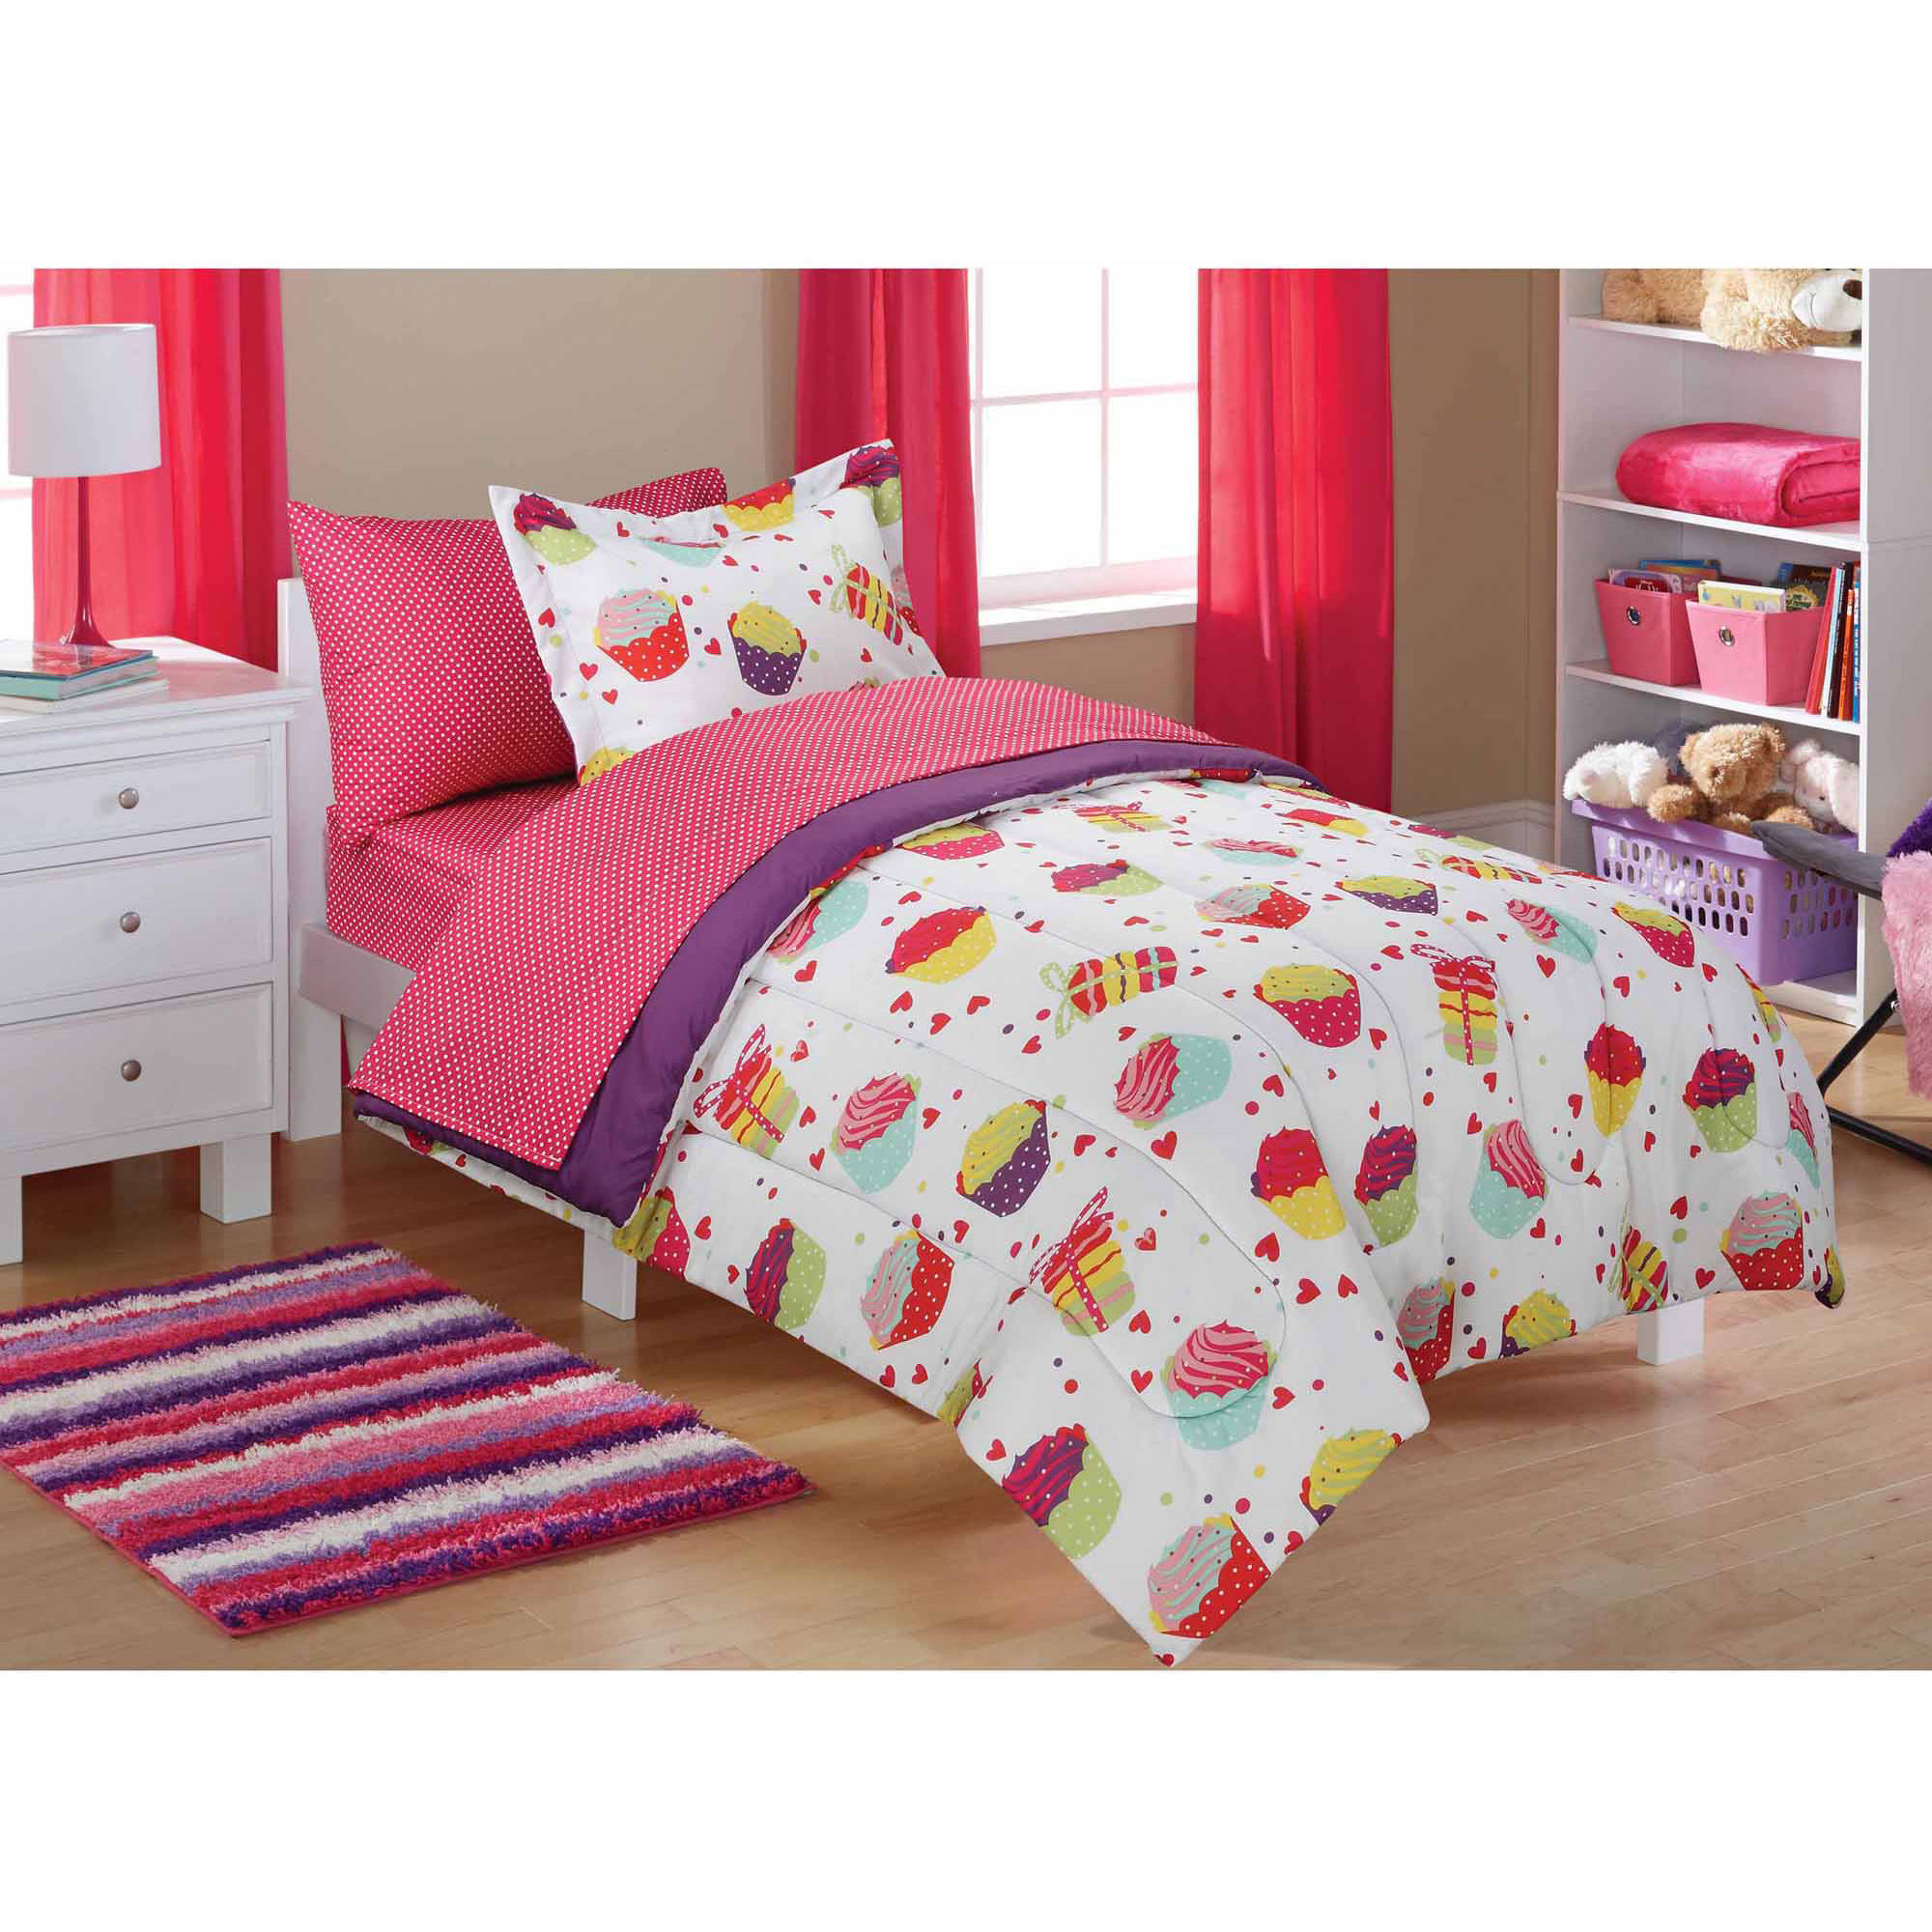 Mainstays Kids Coordinated Bed in a Bag Pink Horsey Walmart